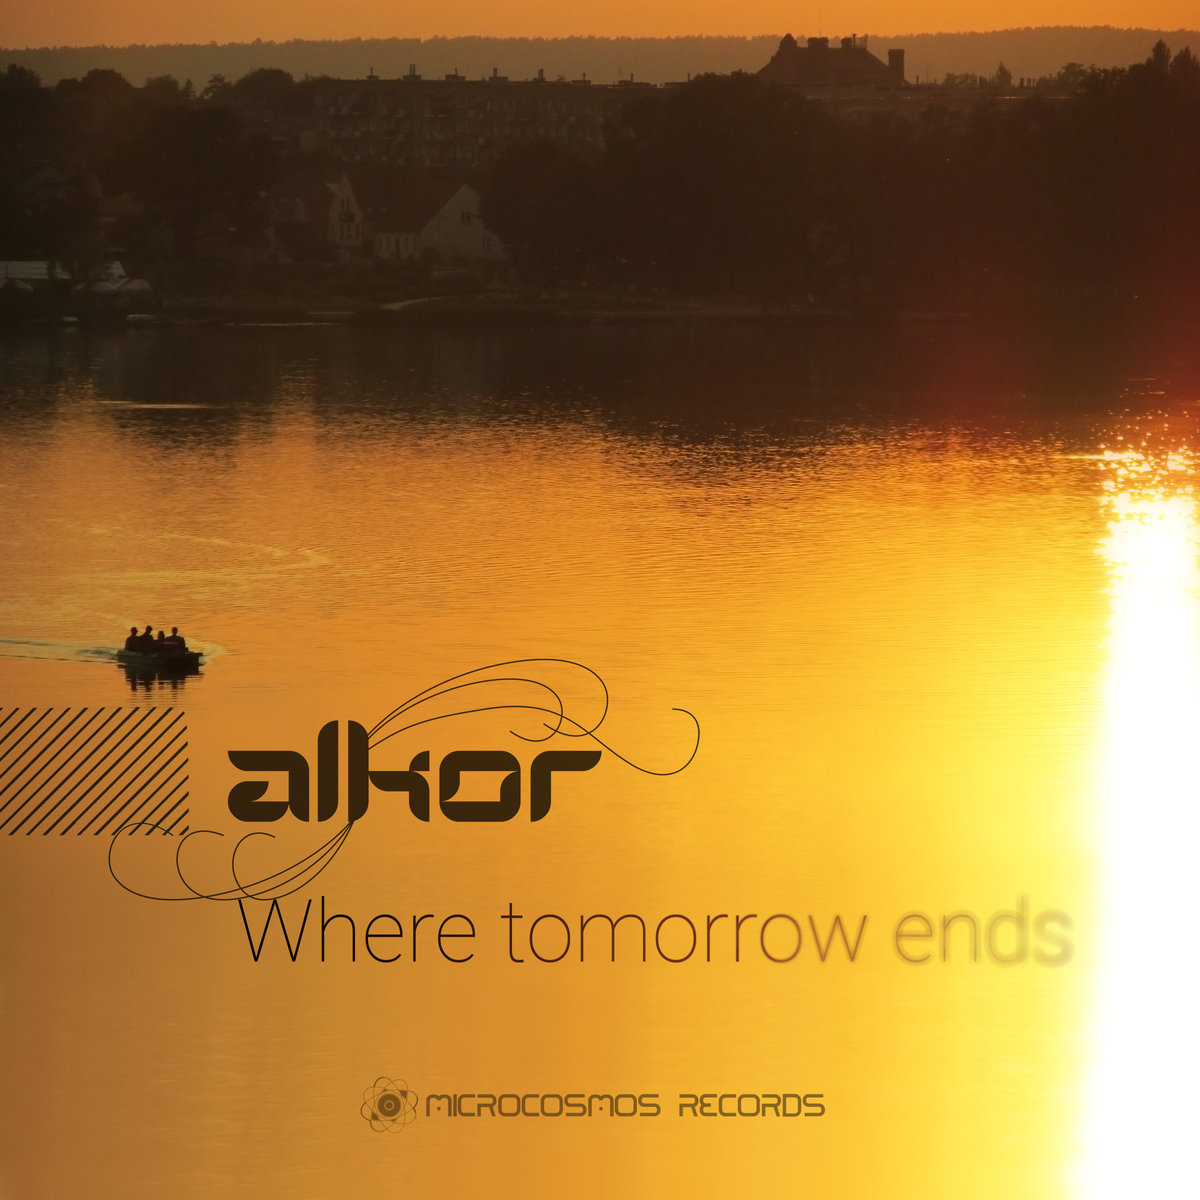 Alkor - Five Levels Of The Deep @ 'Where Tomorrow Ends' album (ambient, chill-out)